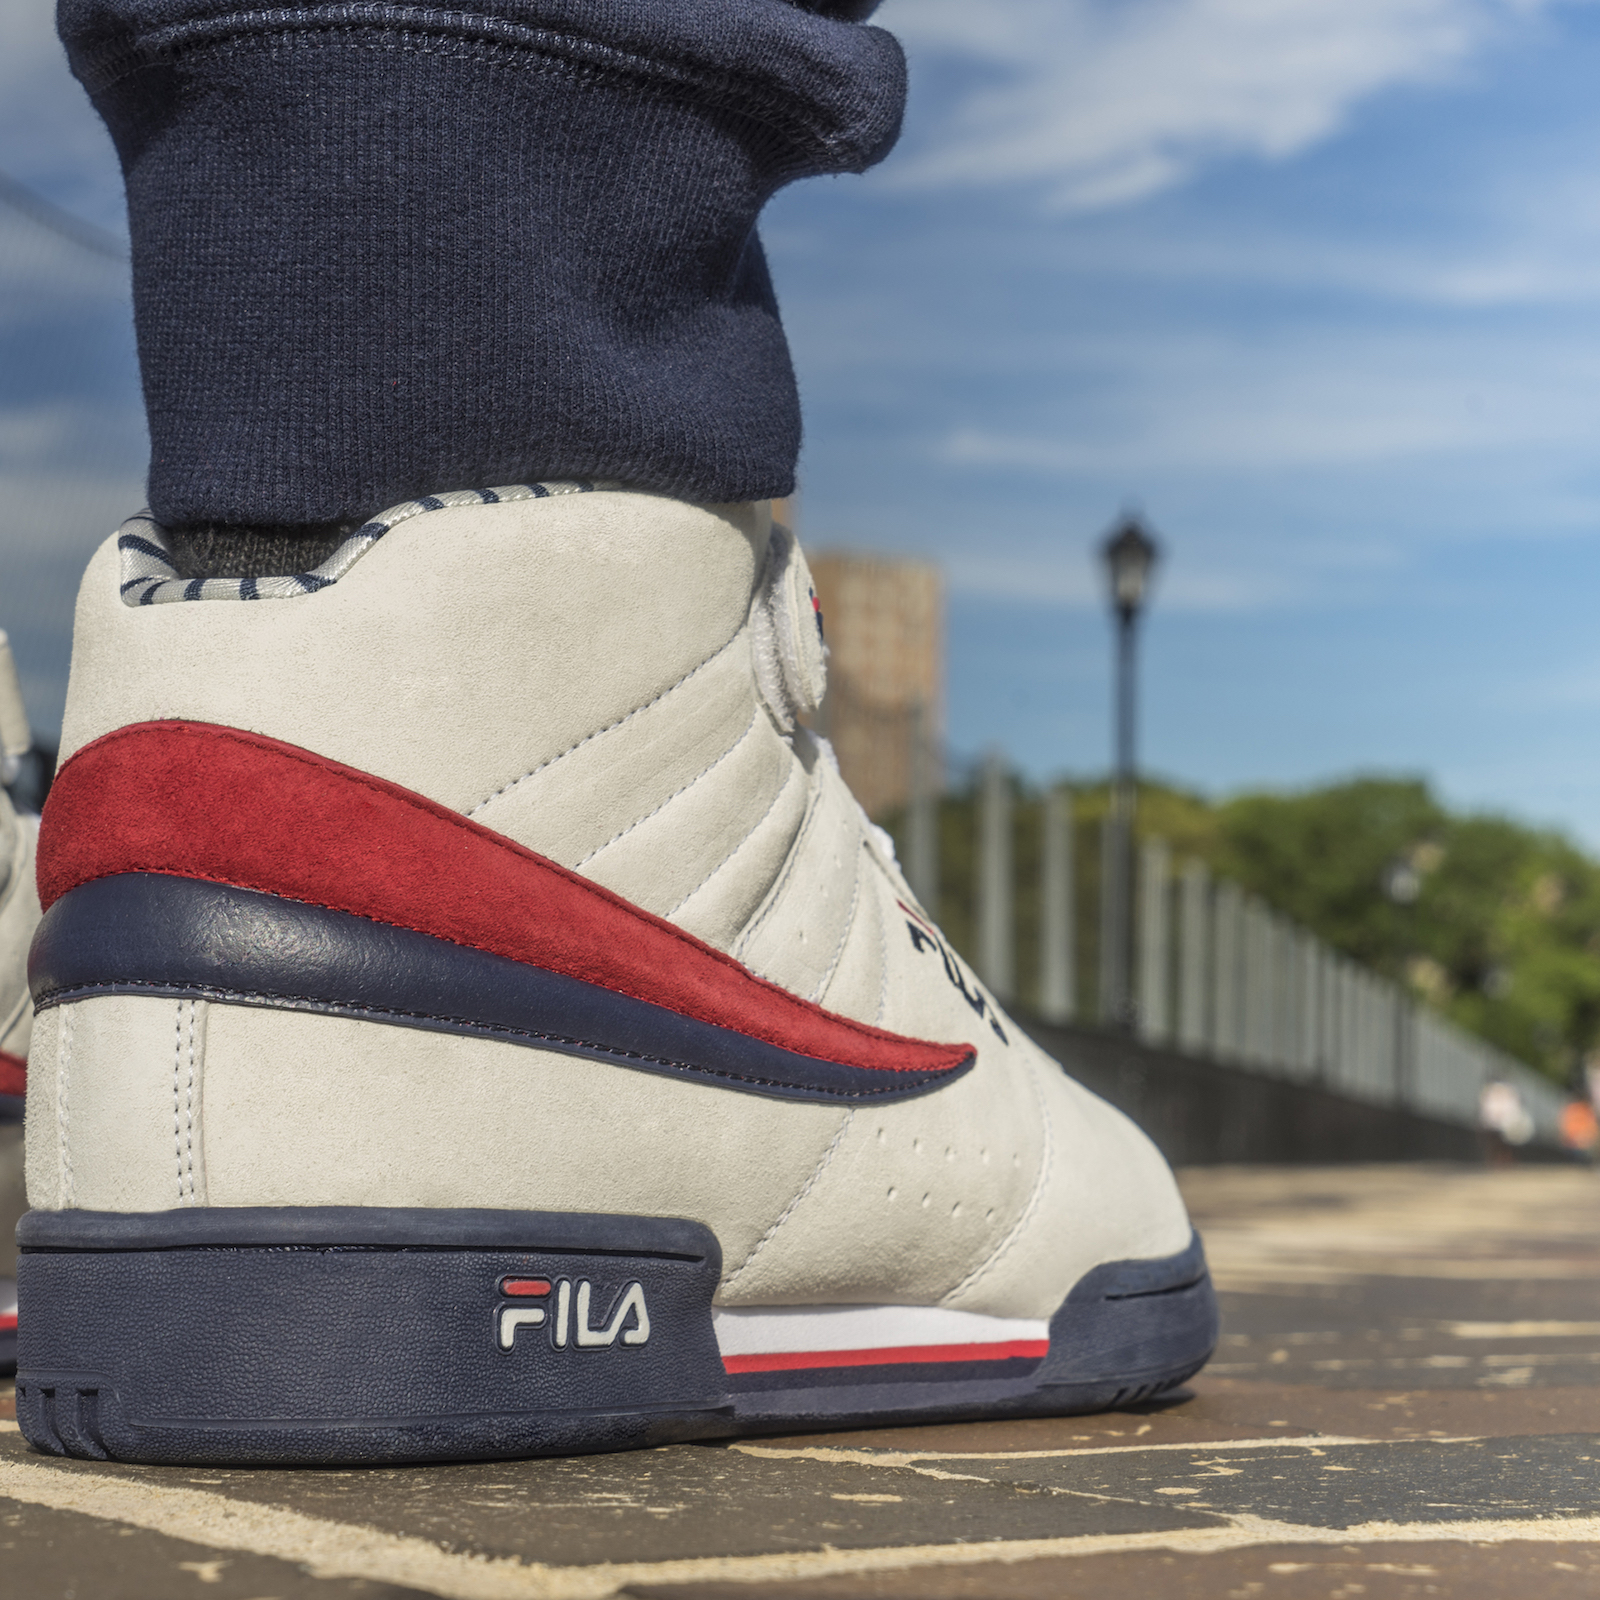 fila between the lines pack F-13 13